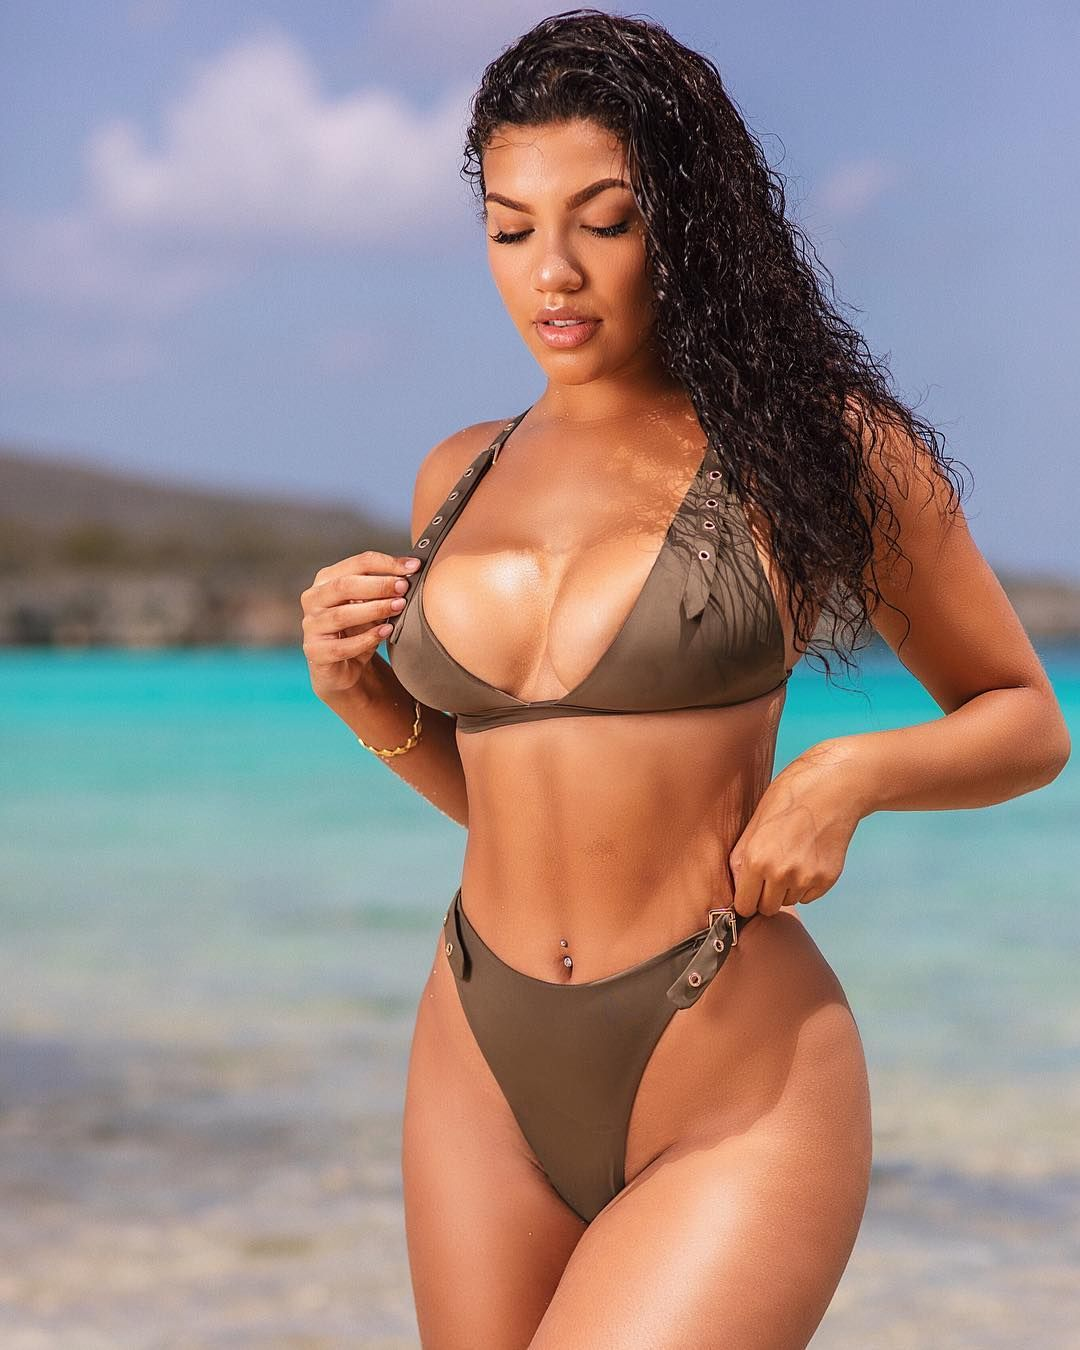 Tiona Fernan Super Hot Bikini - Tiona Fernan Super Hot Bikini